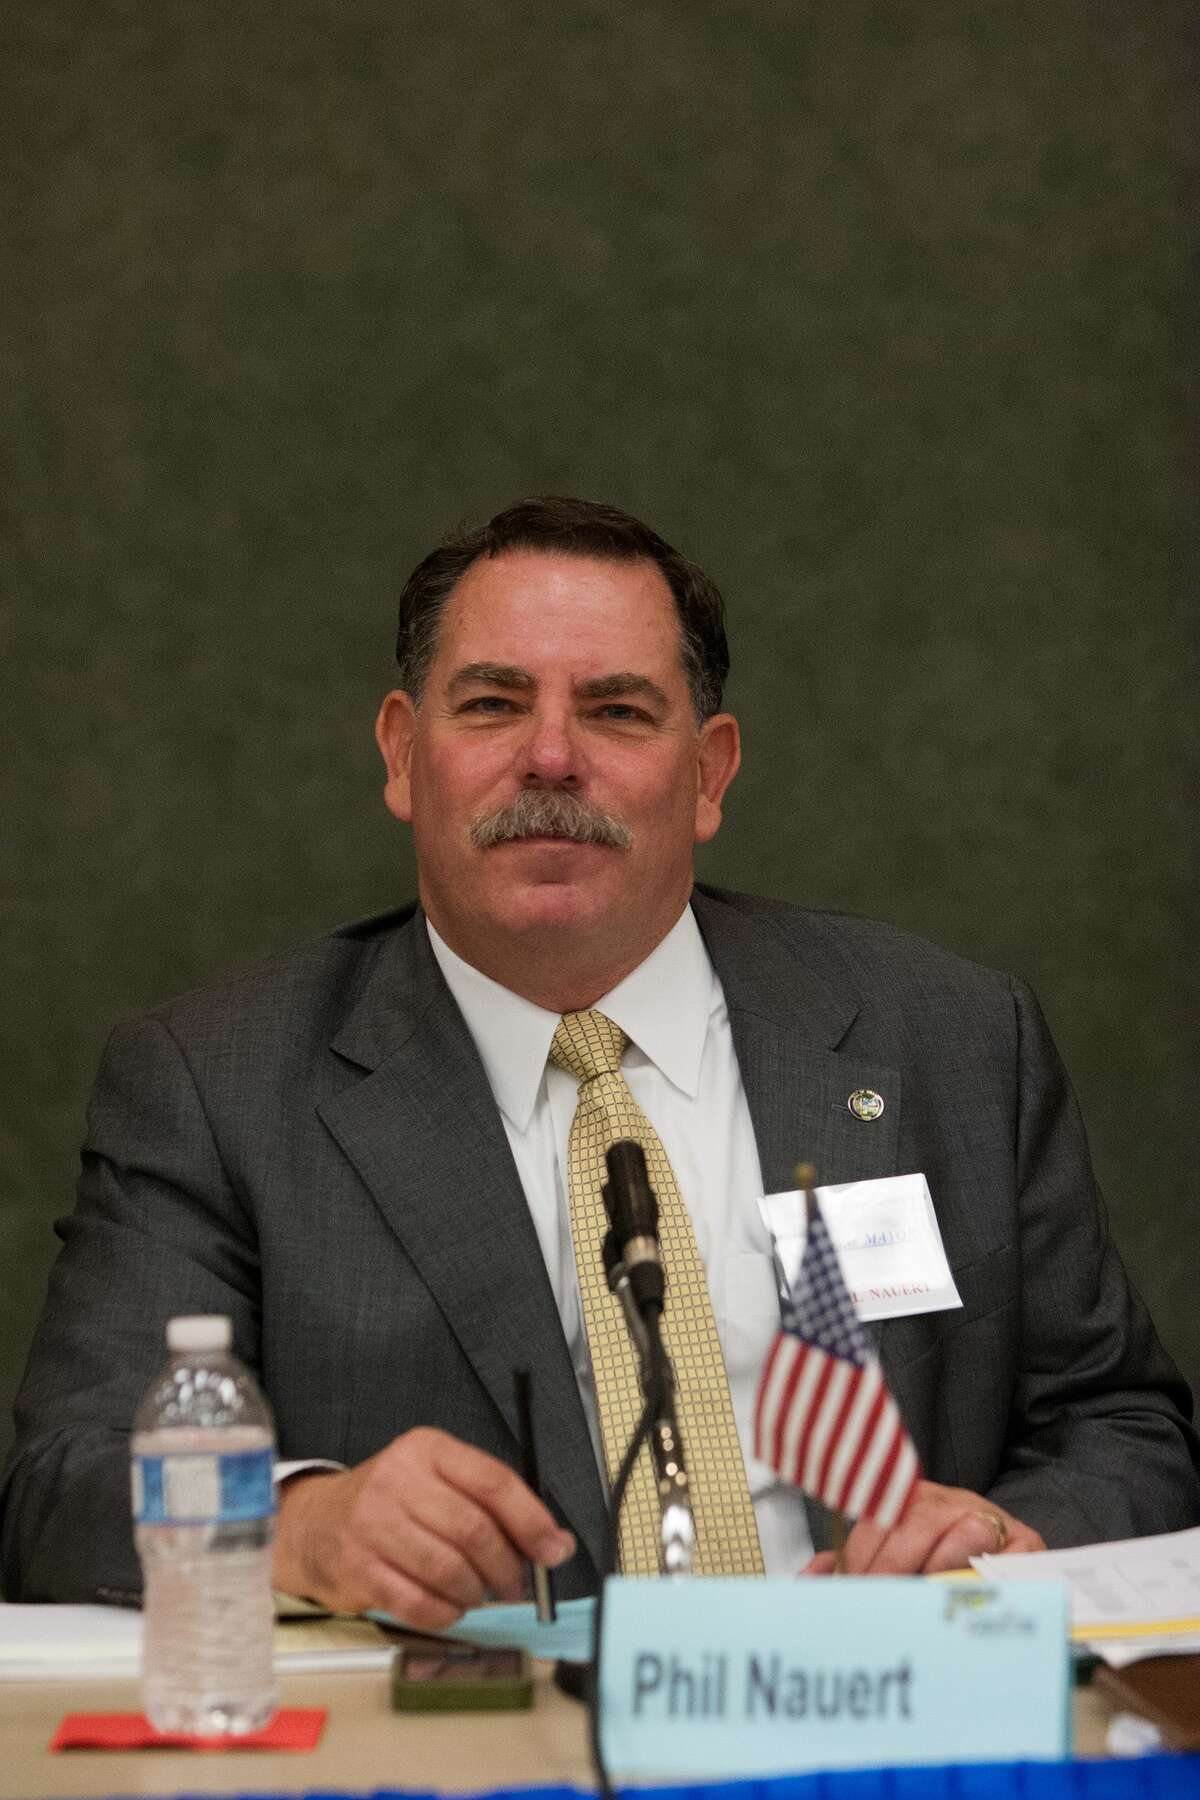 Phil Nauert, mayor, candidate for reelection, at the Bellaire Candidate Forum. Photo By R. Clayton McKee